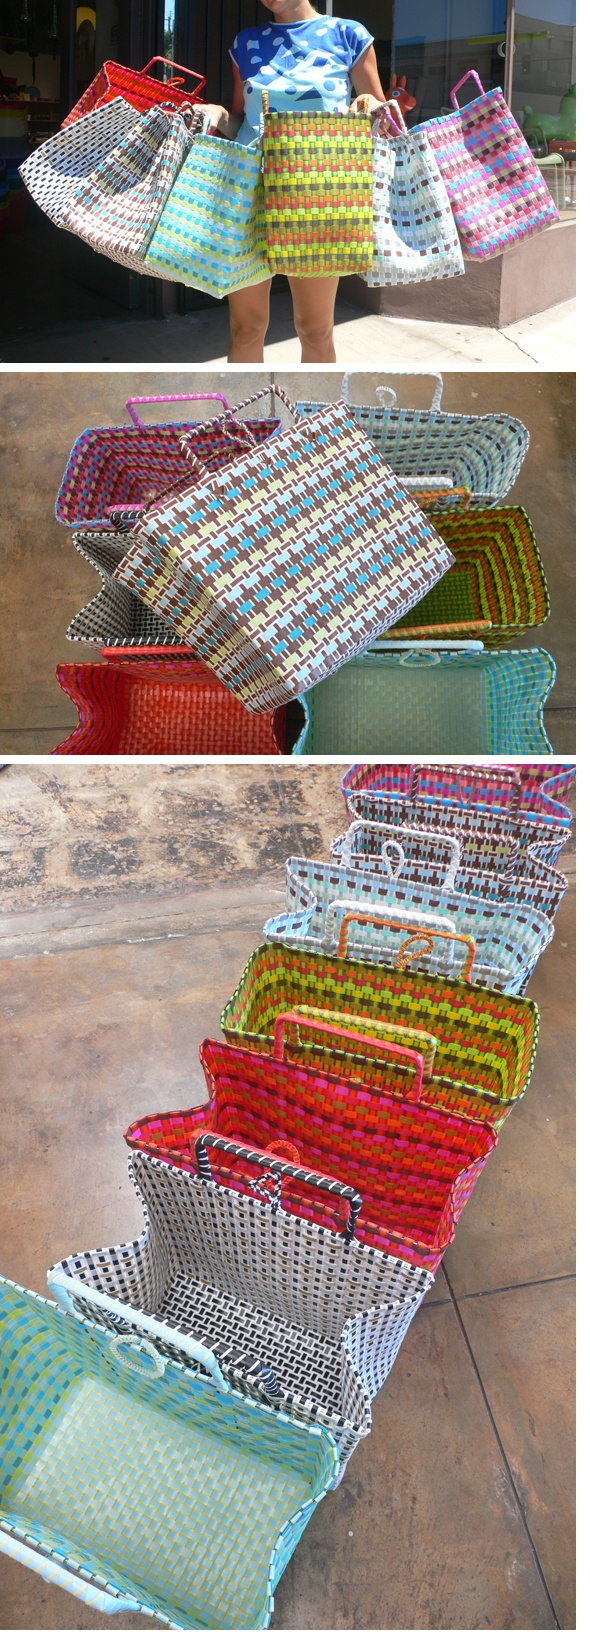 woven totes from plastica